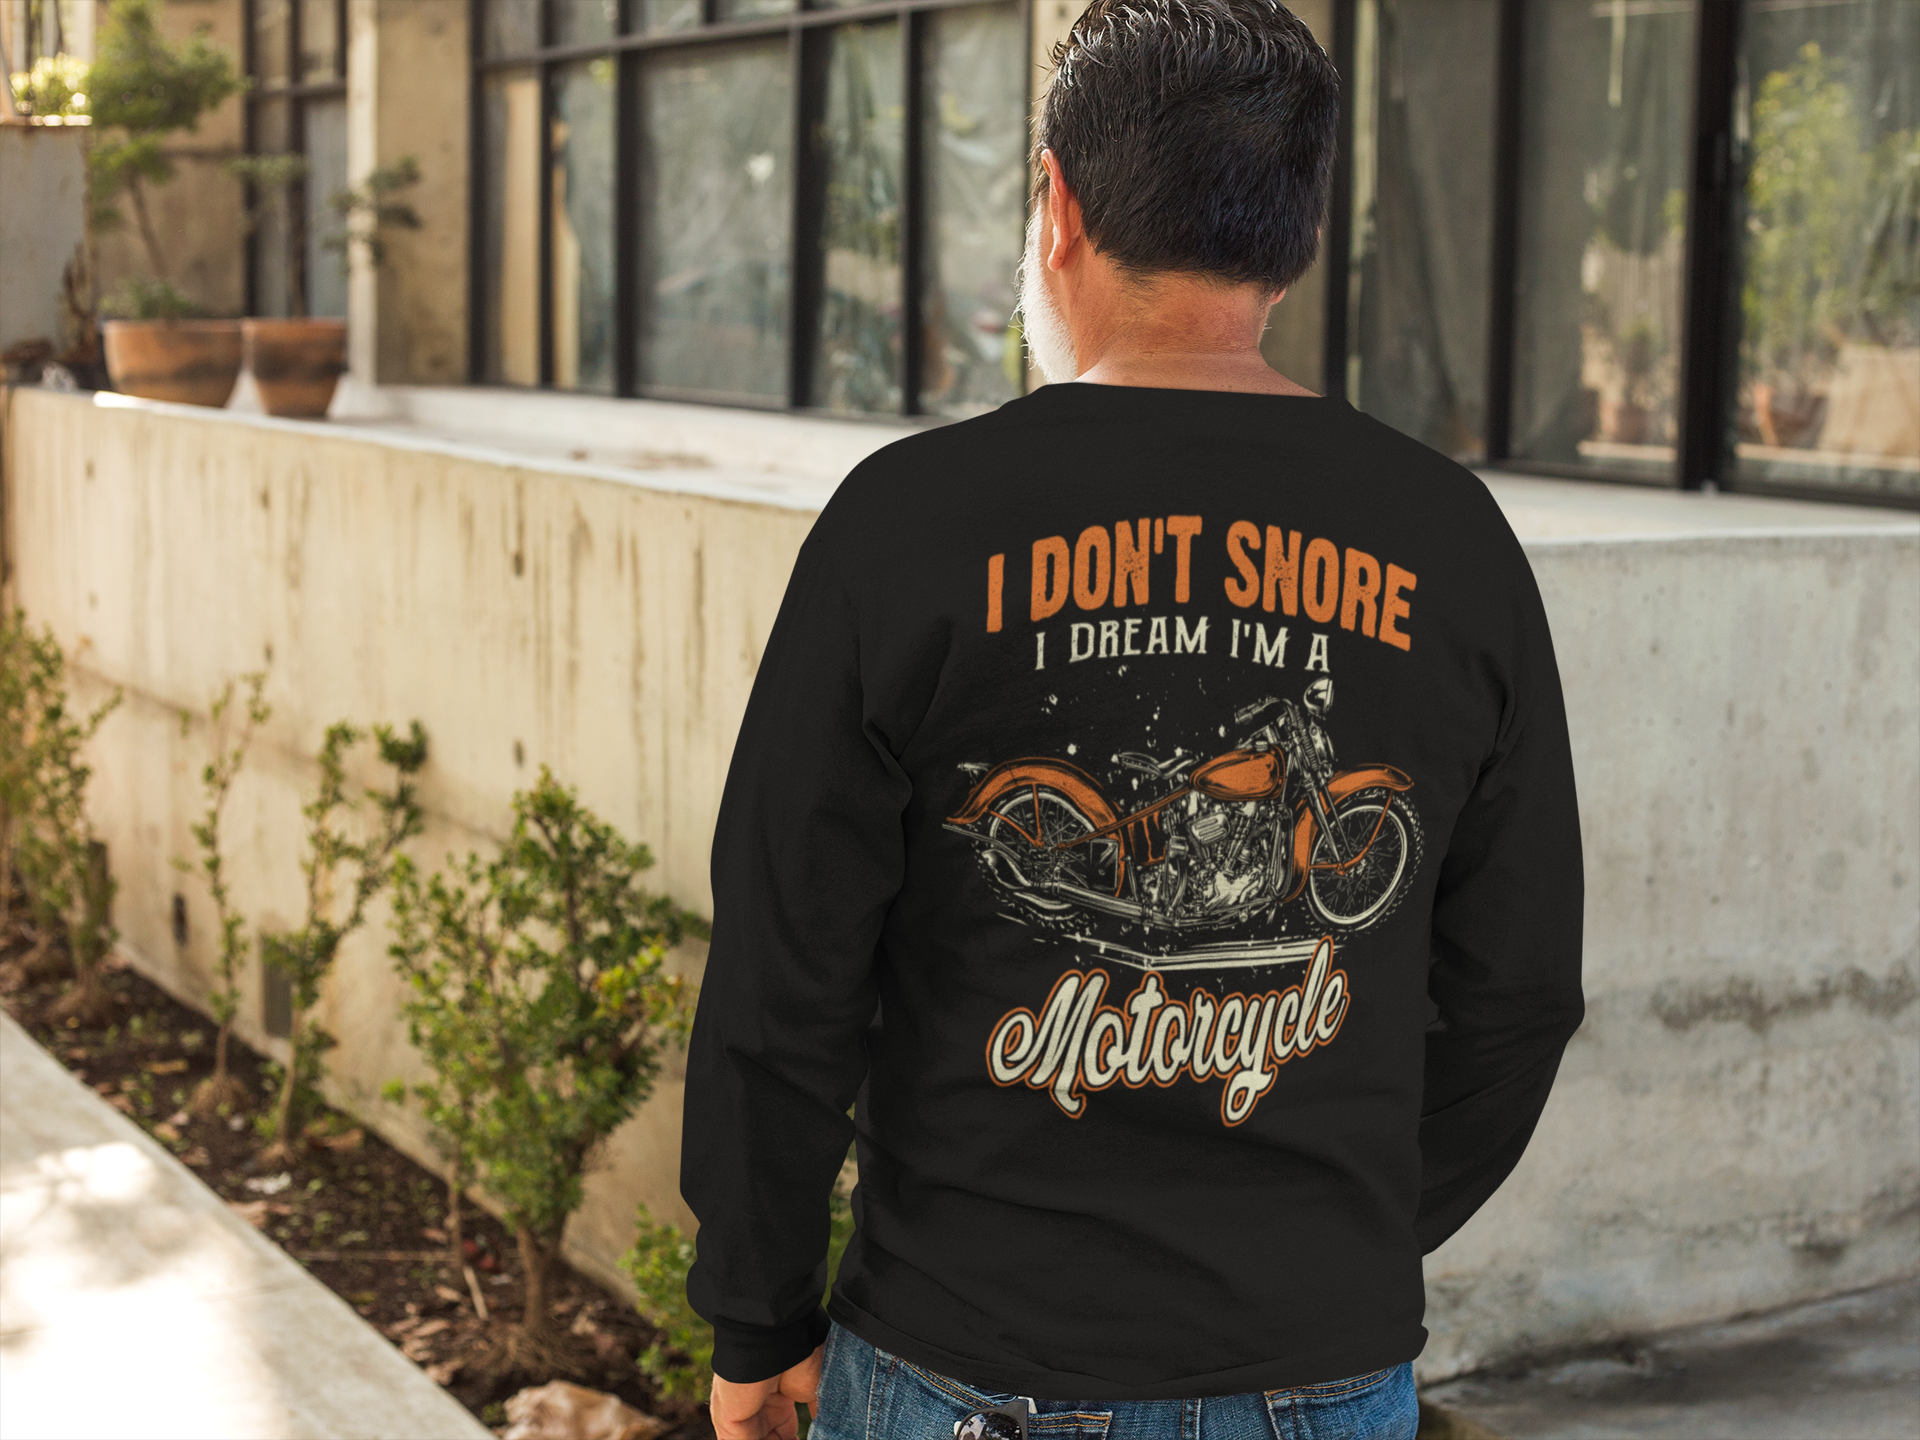 Awesome V-Max Rider Hoodie Personalised  Funny Biker Ideal Gift